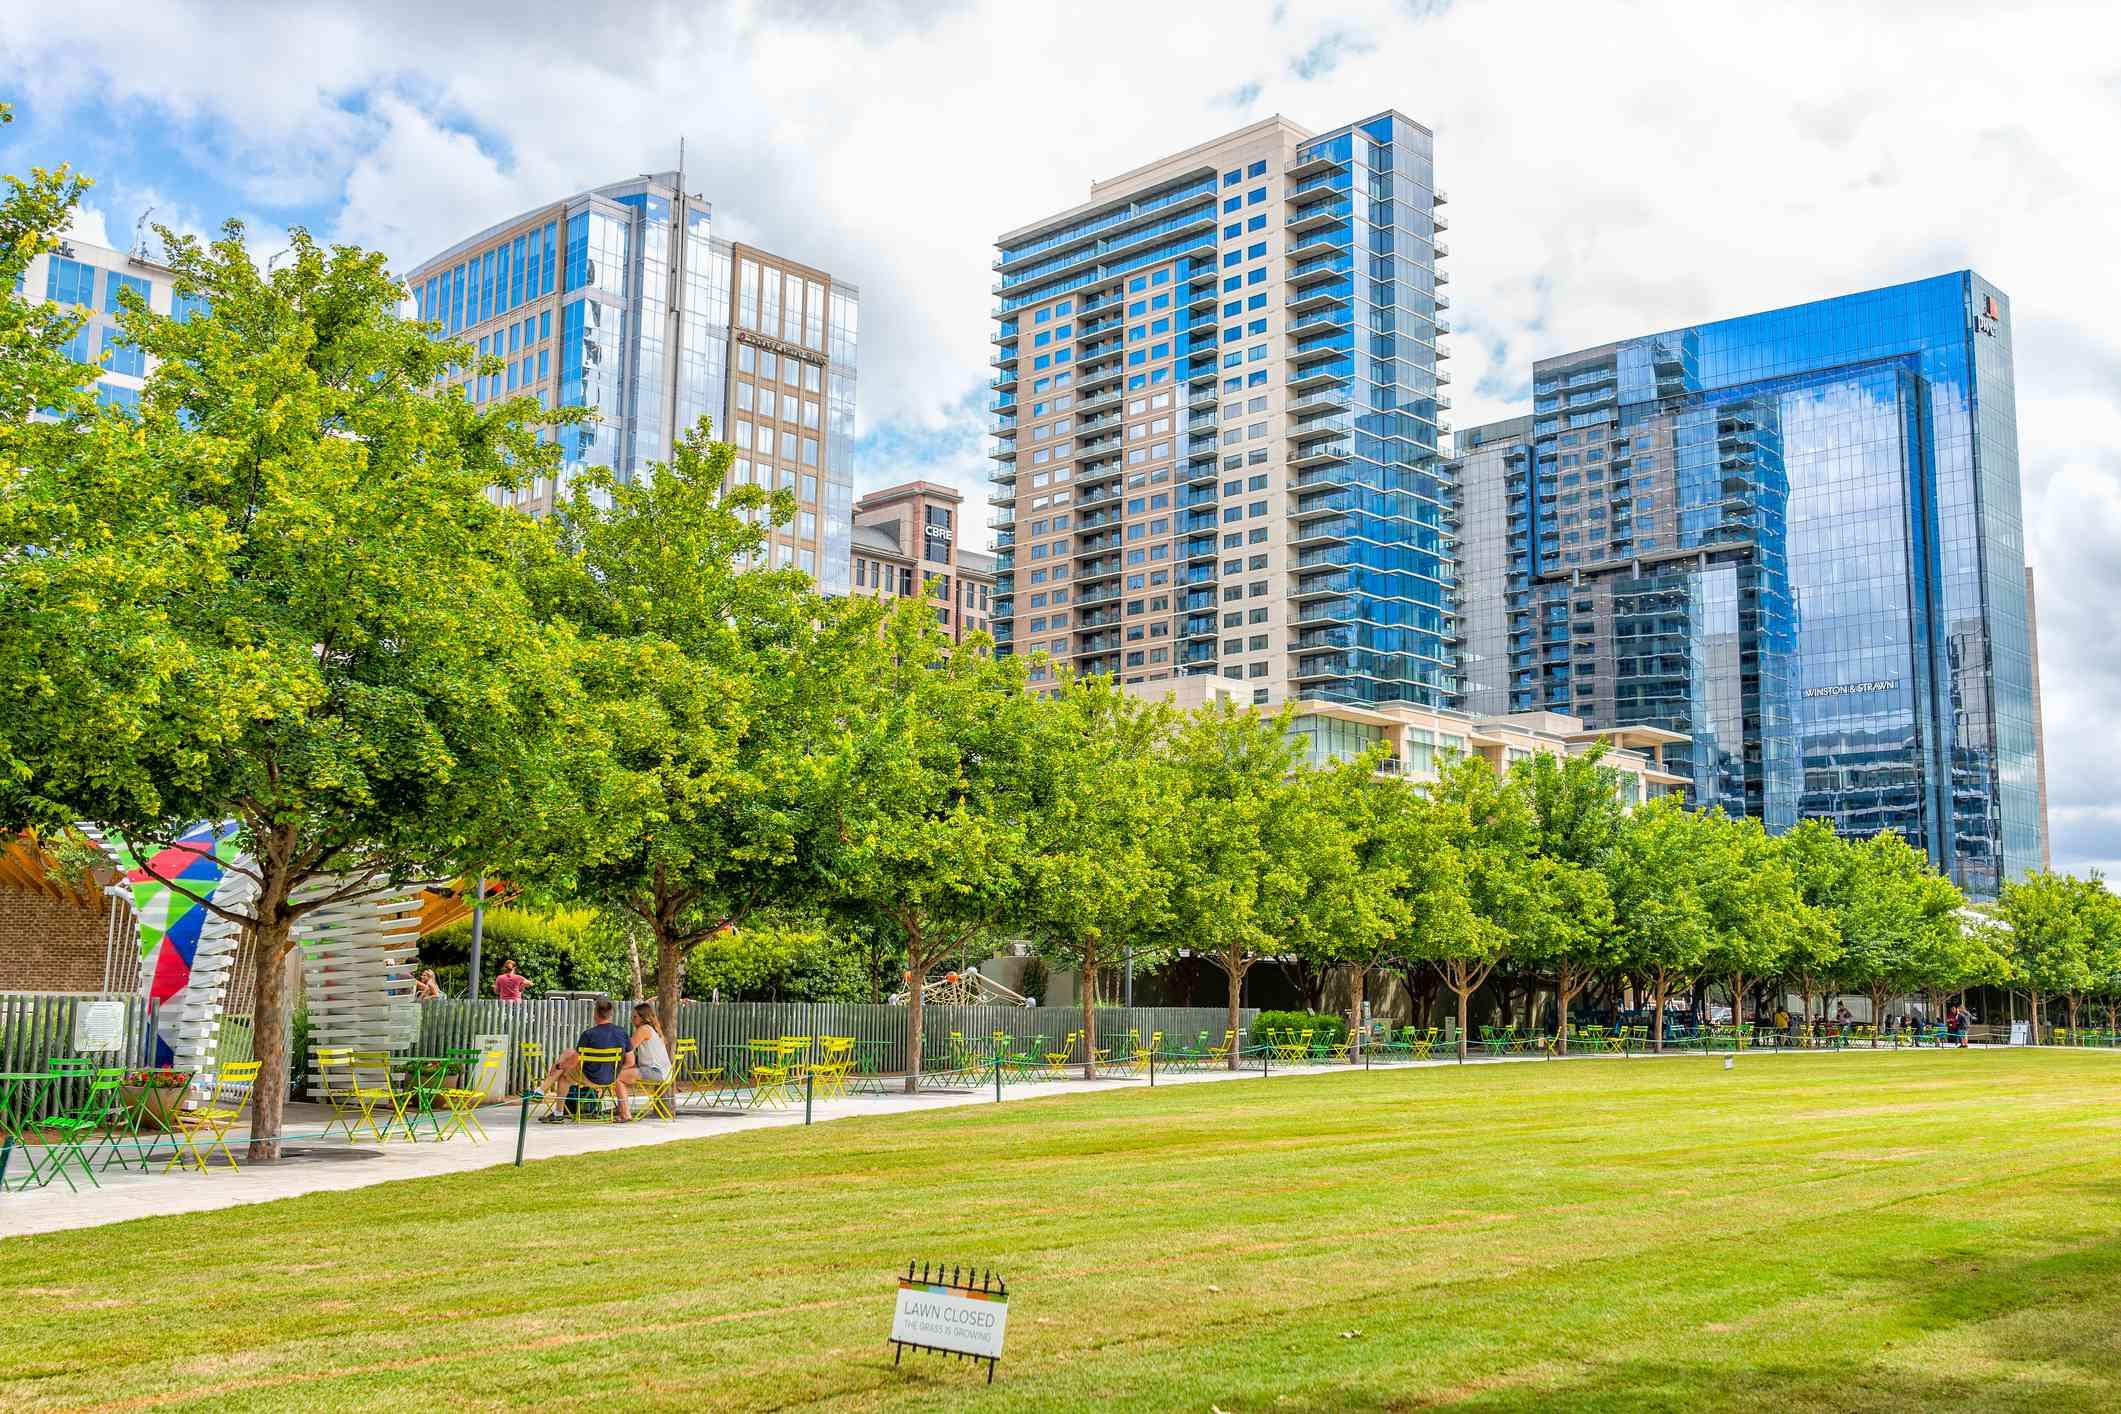 Downtown Klyde Warren green park in summer with lawn grass and cityscape skyline